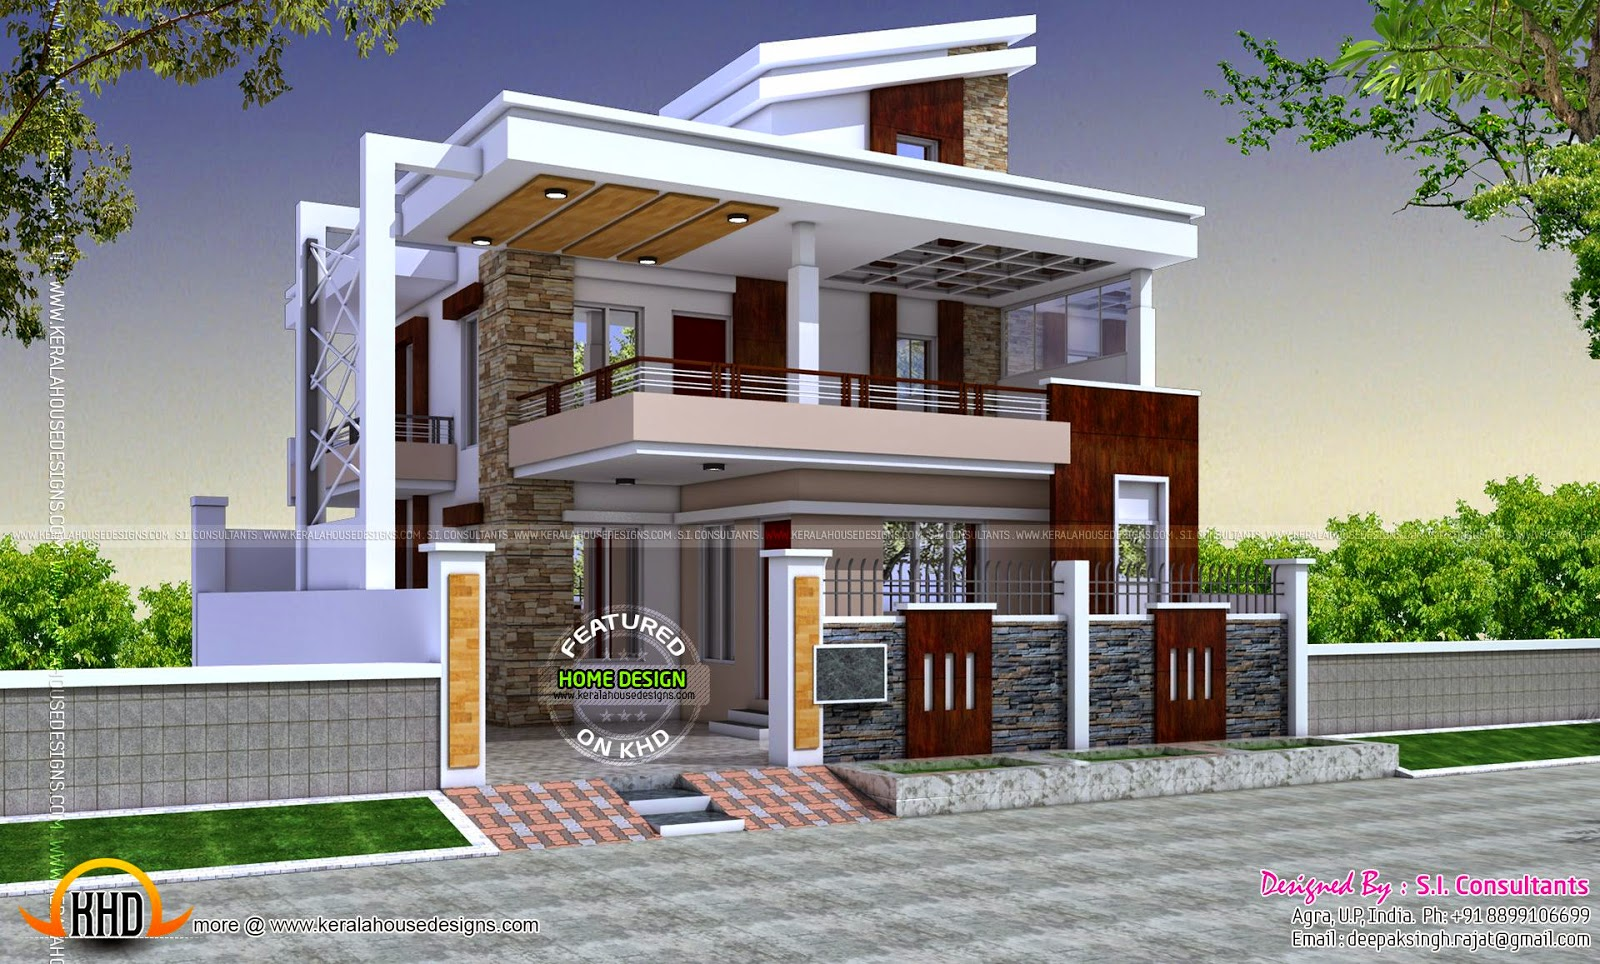 December 2014 kerala home design and floor plans for Home designs exterior styles